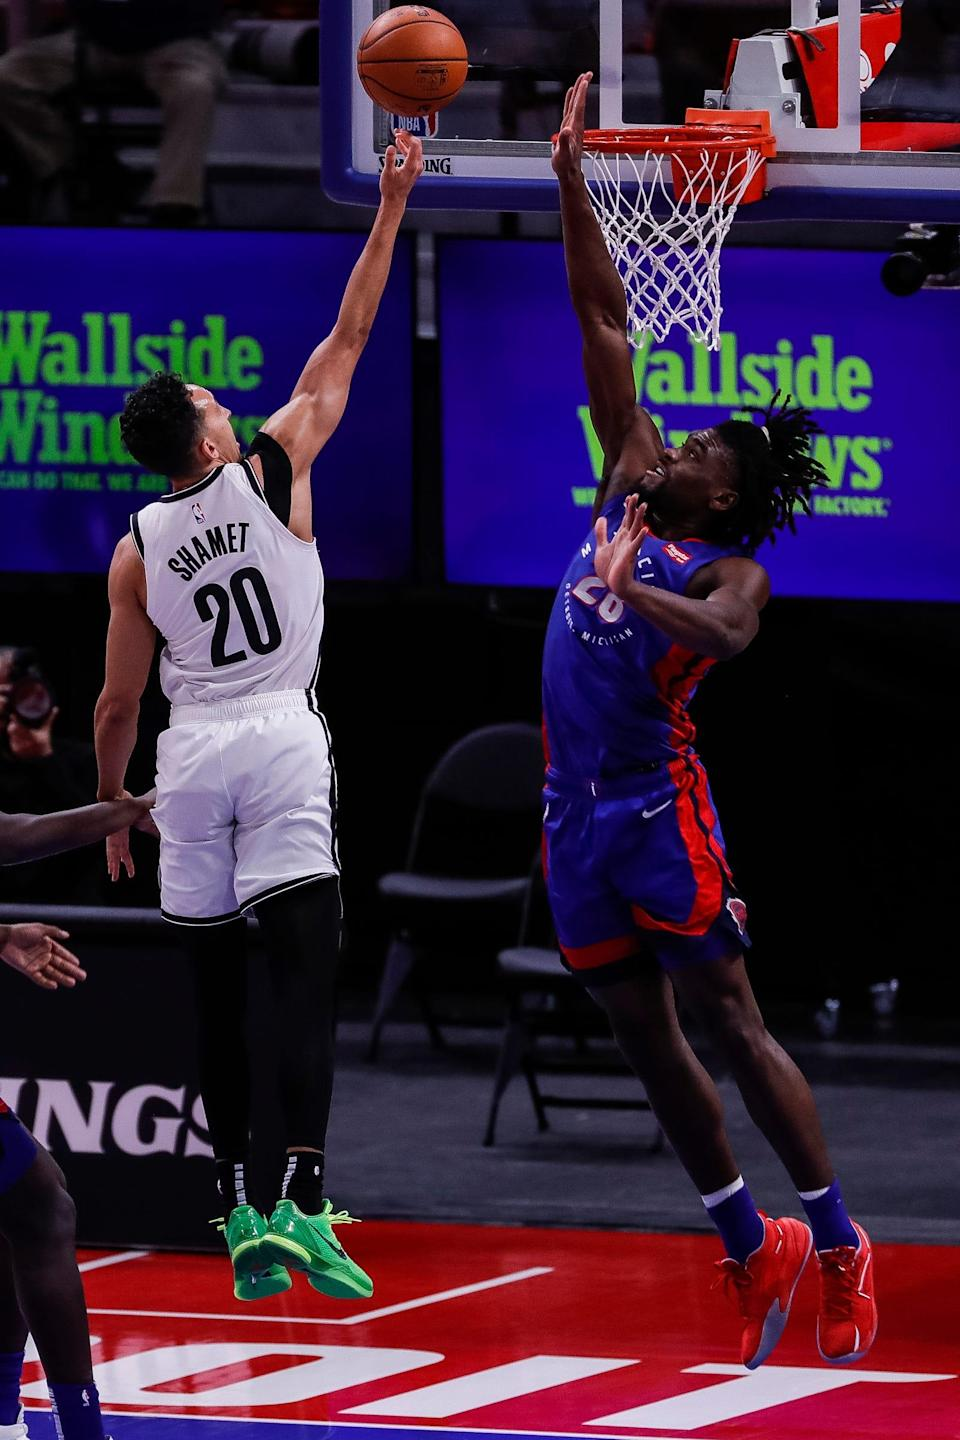 Detroit Pistons center Isaiah Stewart tries to block a layup from Brooklyn Nets guard Landry Shamet during the first half at Little Caesars Arena, Tuesday, Feb. 9, 2021.